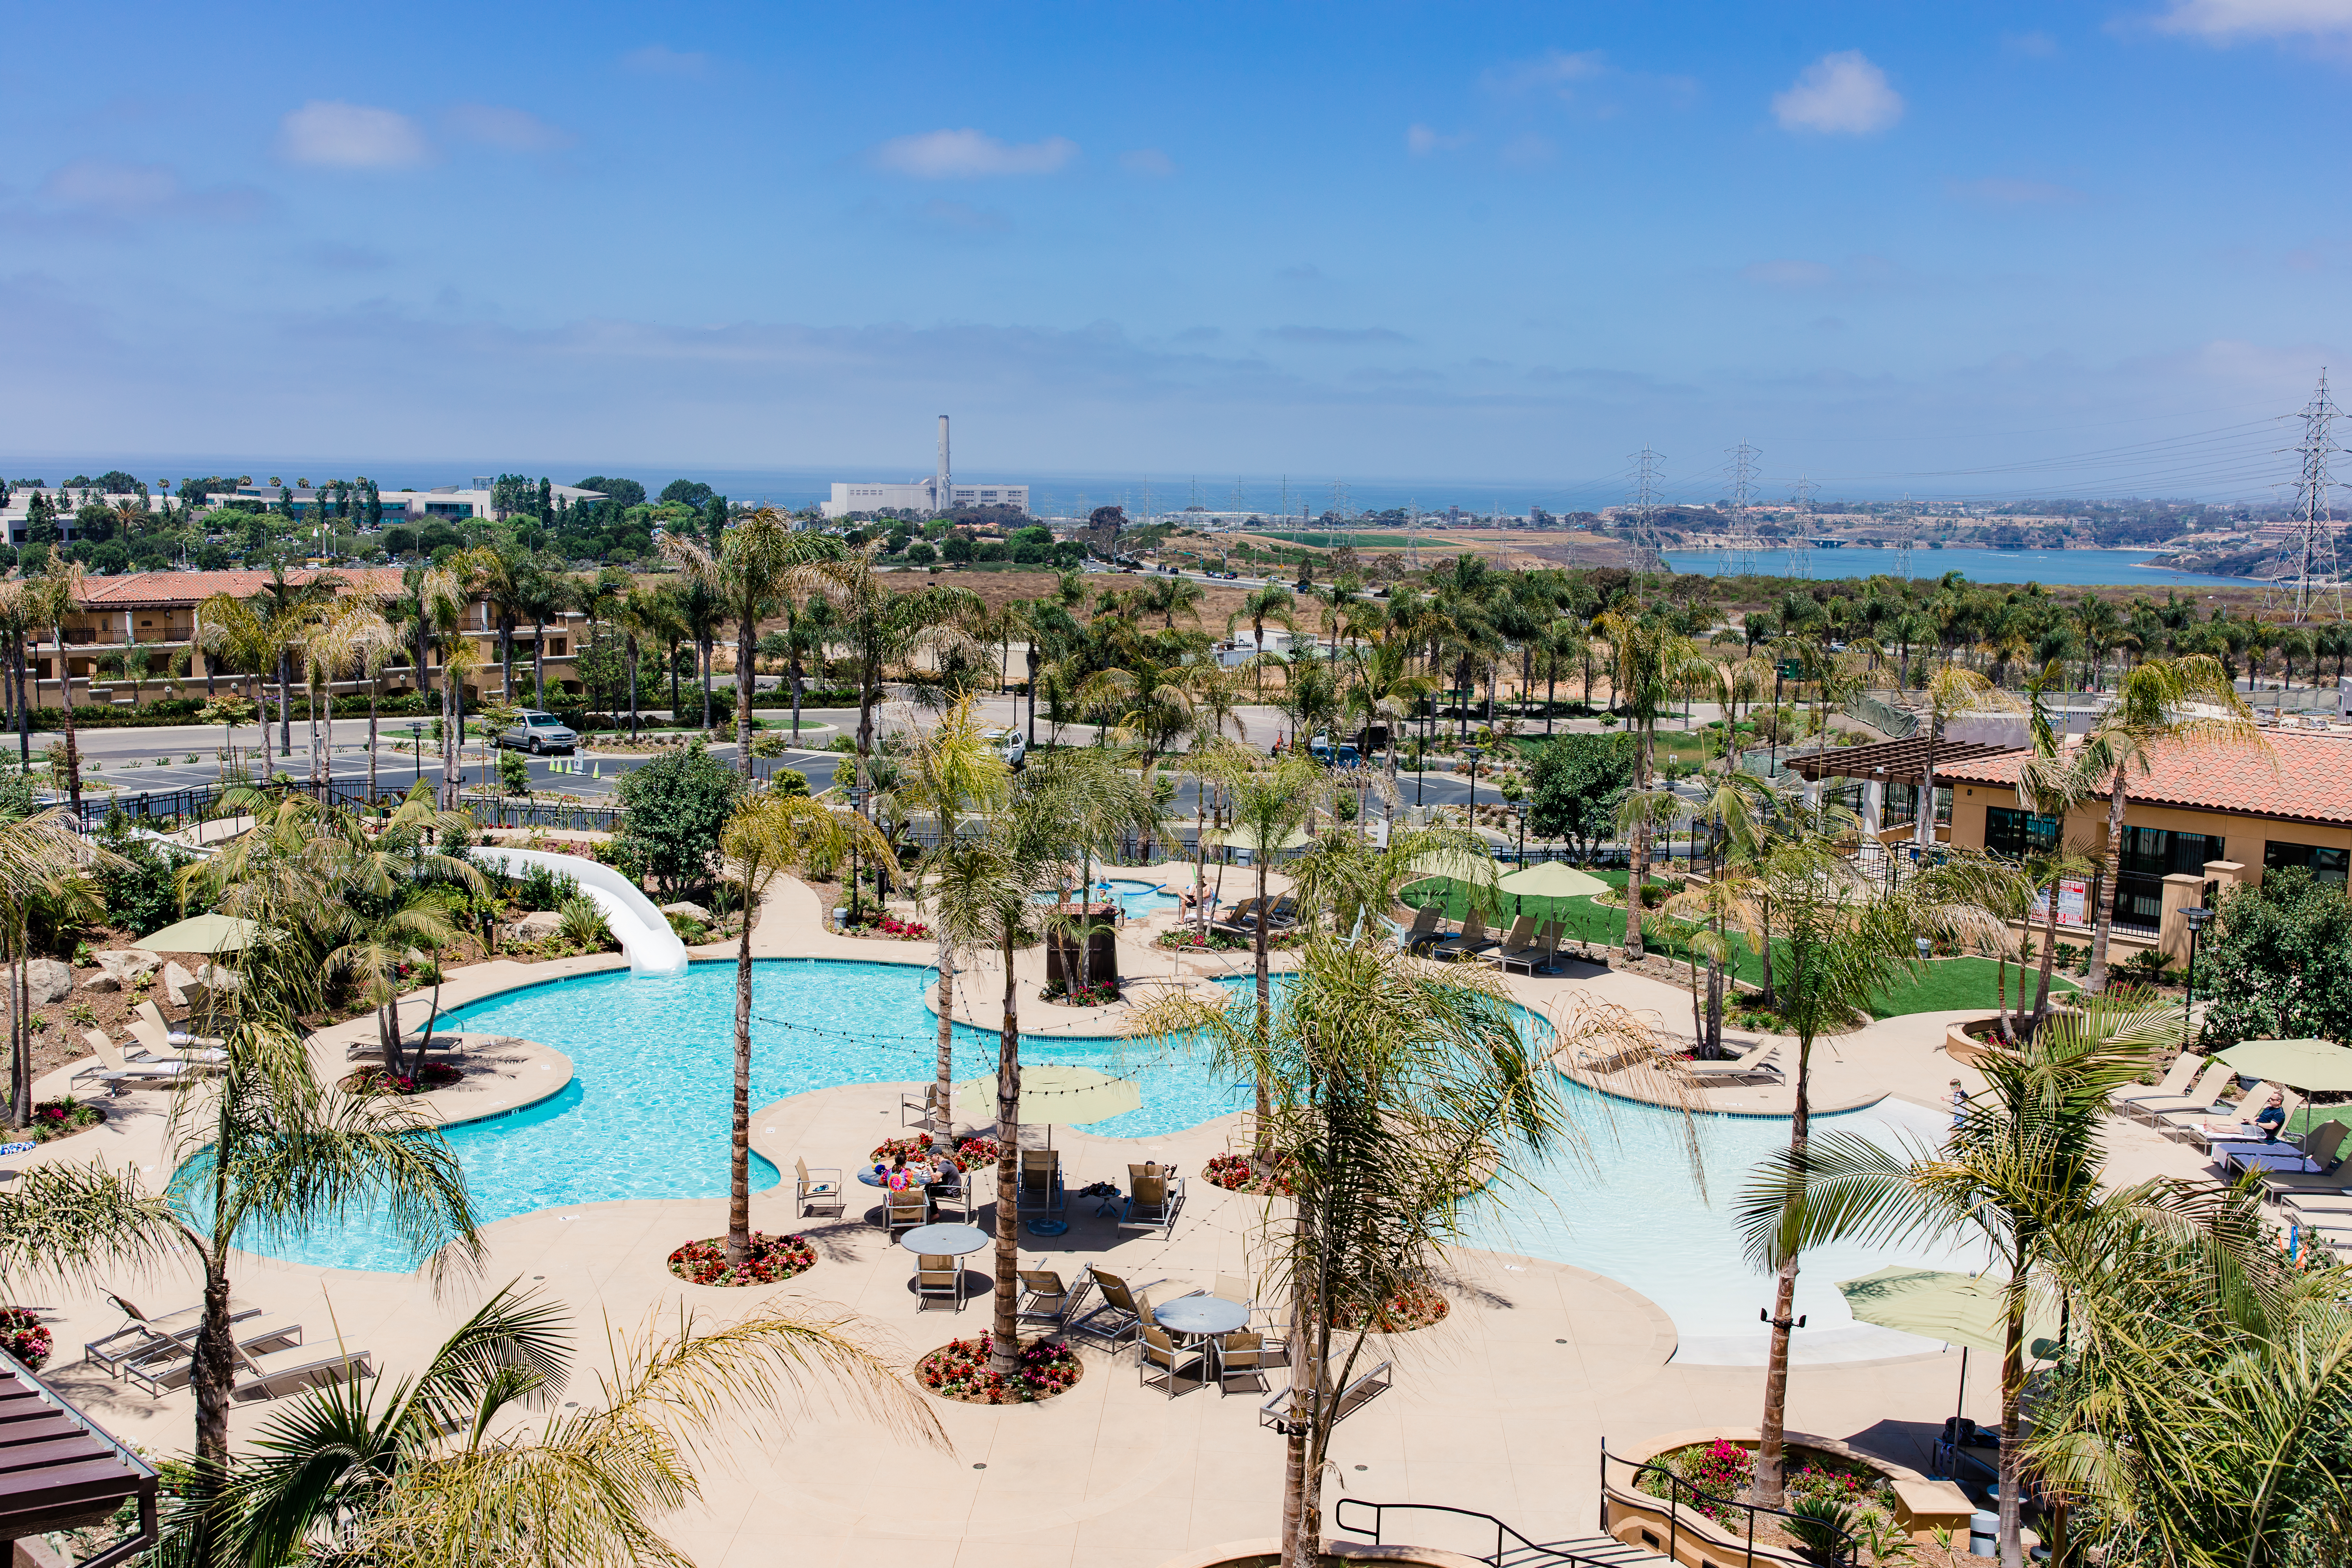 The outdoor swimming pool with water slide at Sheraton Carlsbad